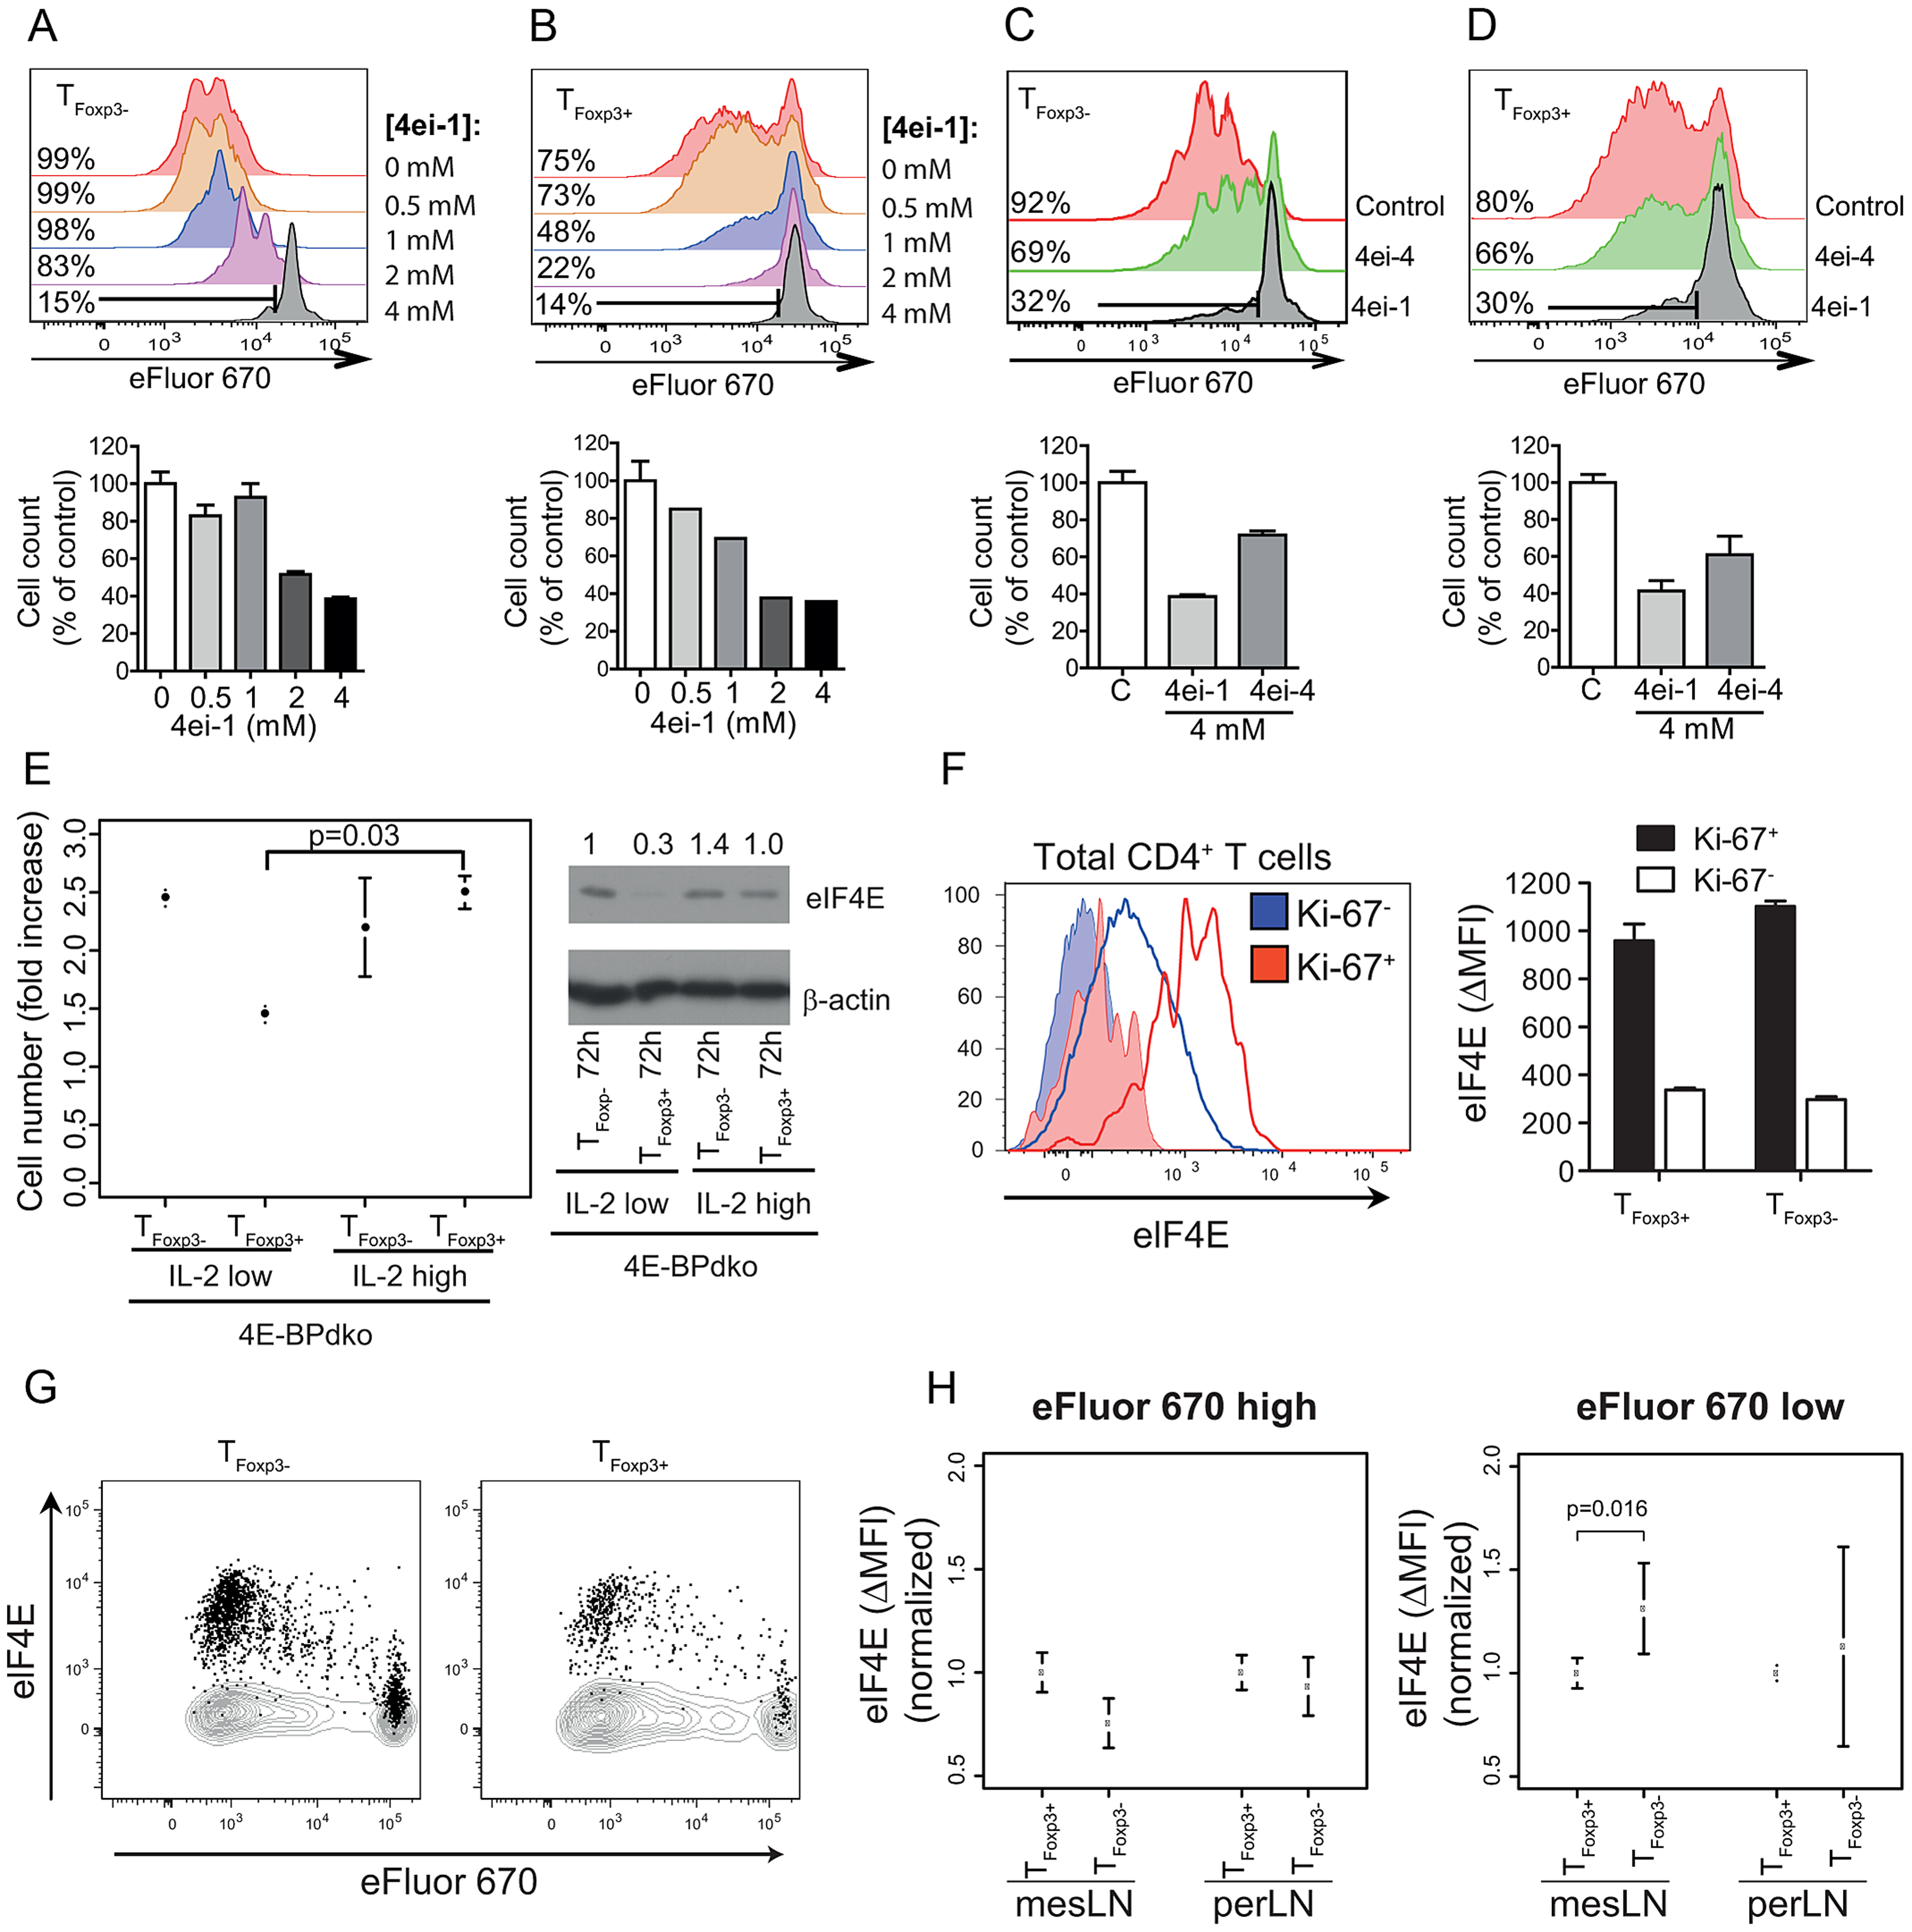 eIF4E controls proliferation in T cell subsets.